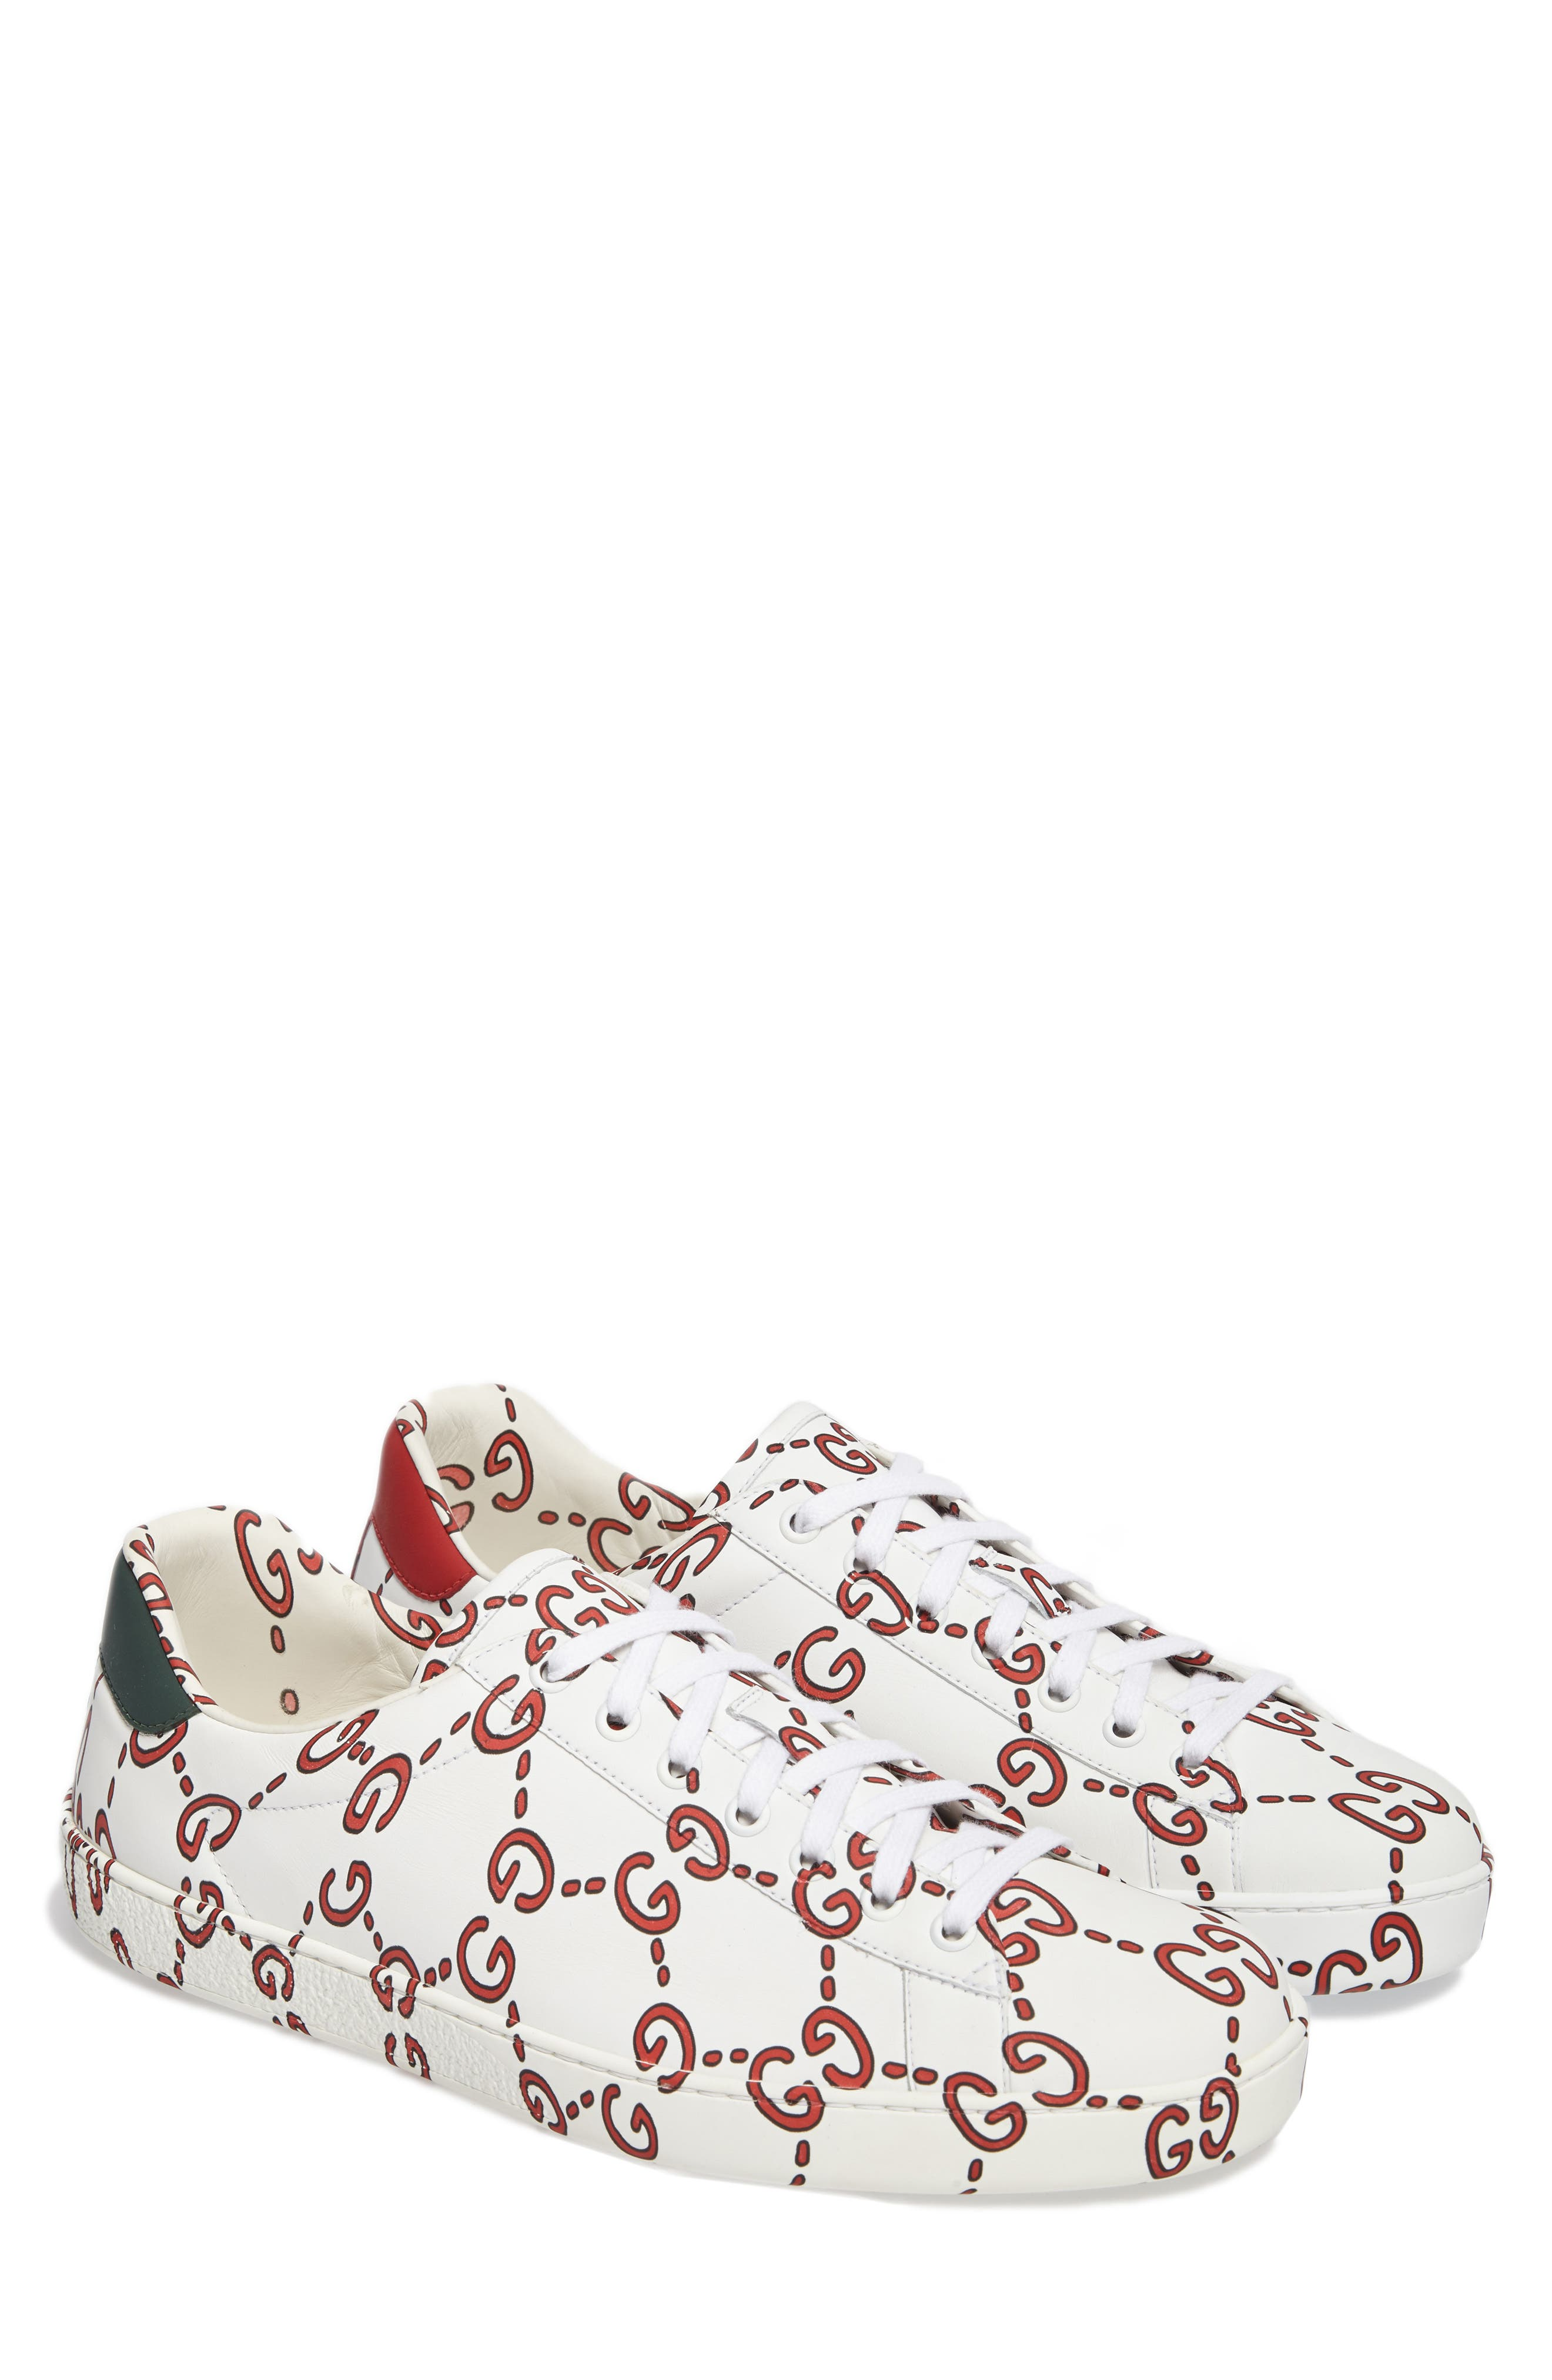 New Ace Guccighost Sneaker,                         Main,                         color, White